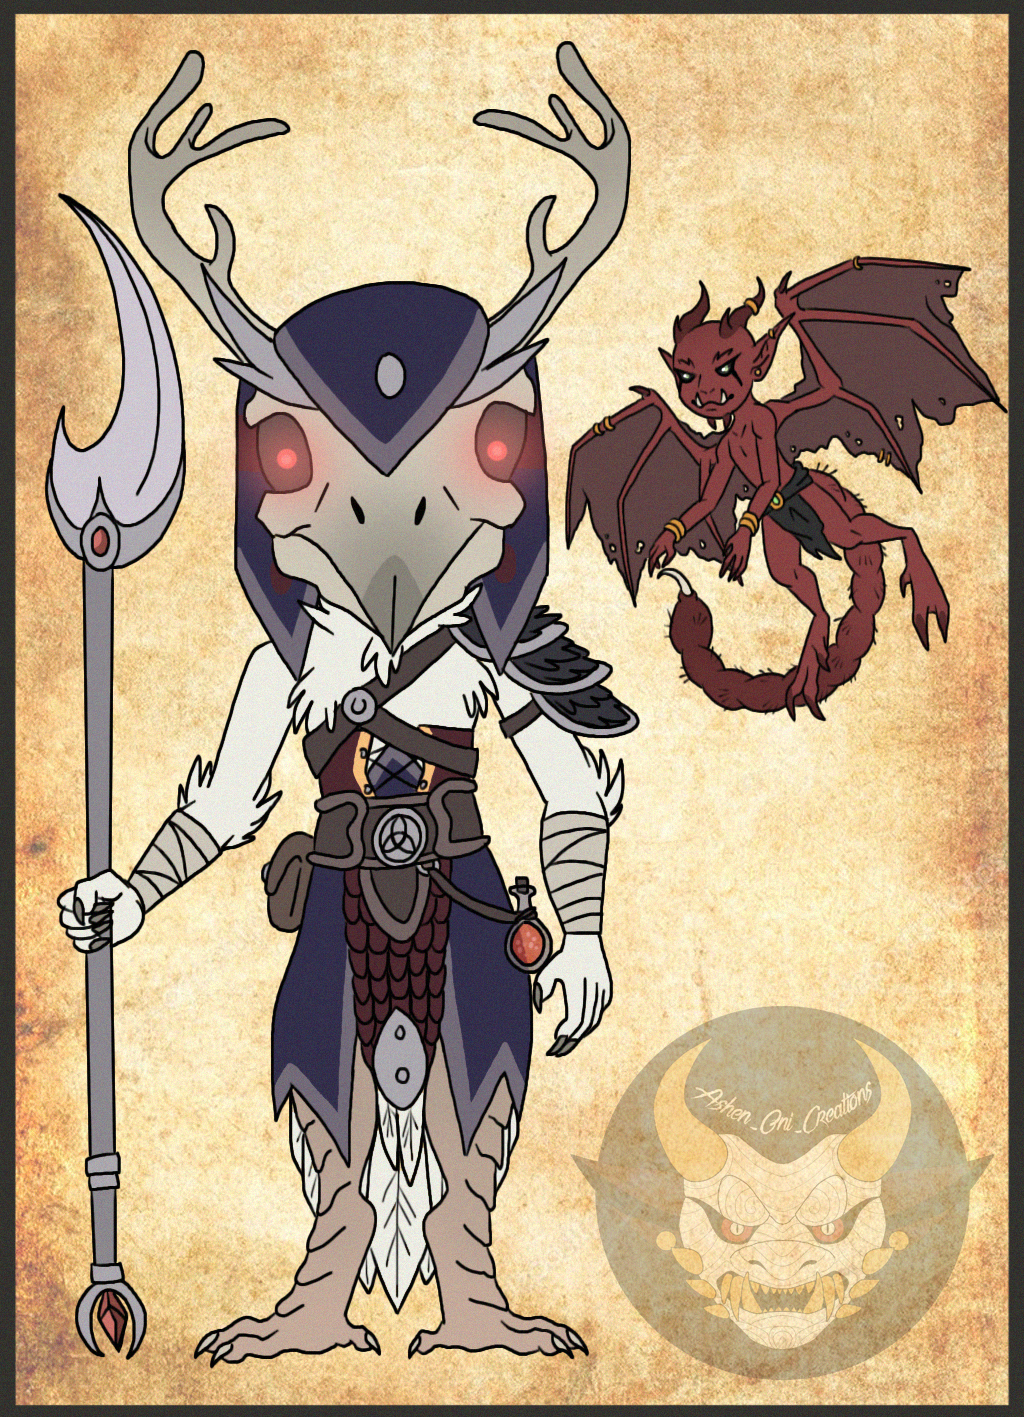 Personal -   Archerius the Decayer & Tyroc Chibi